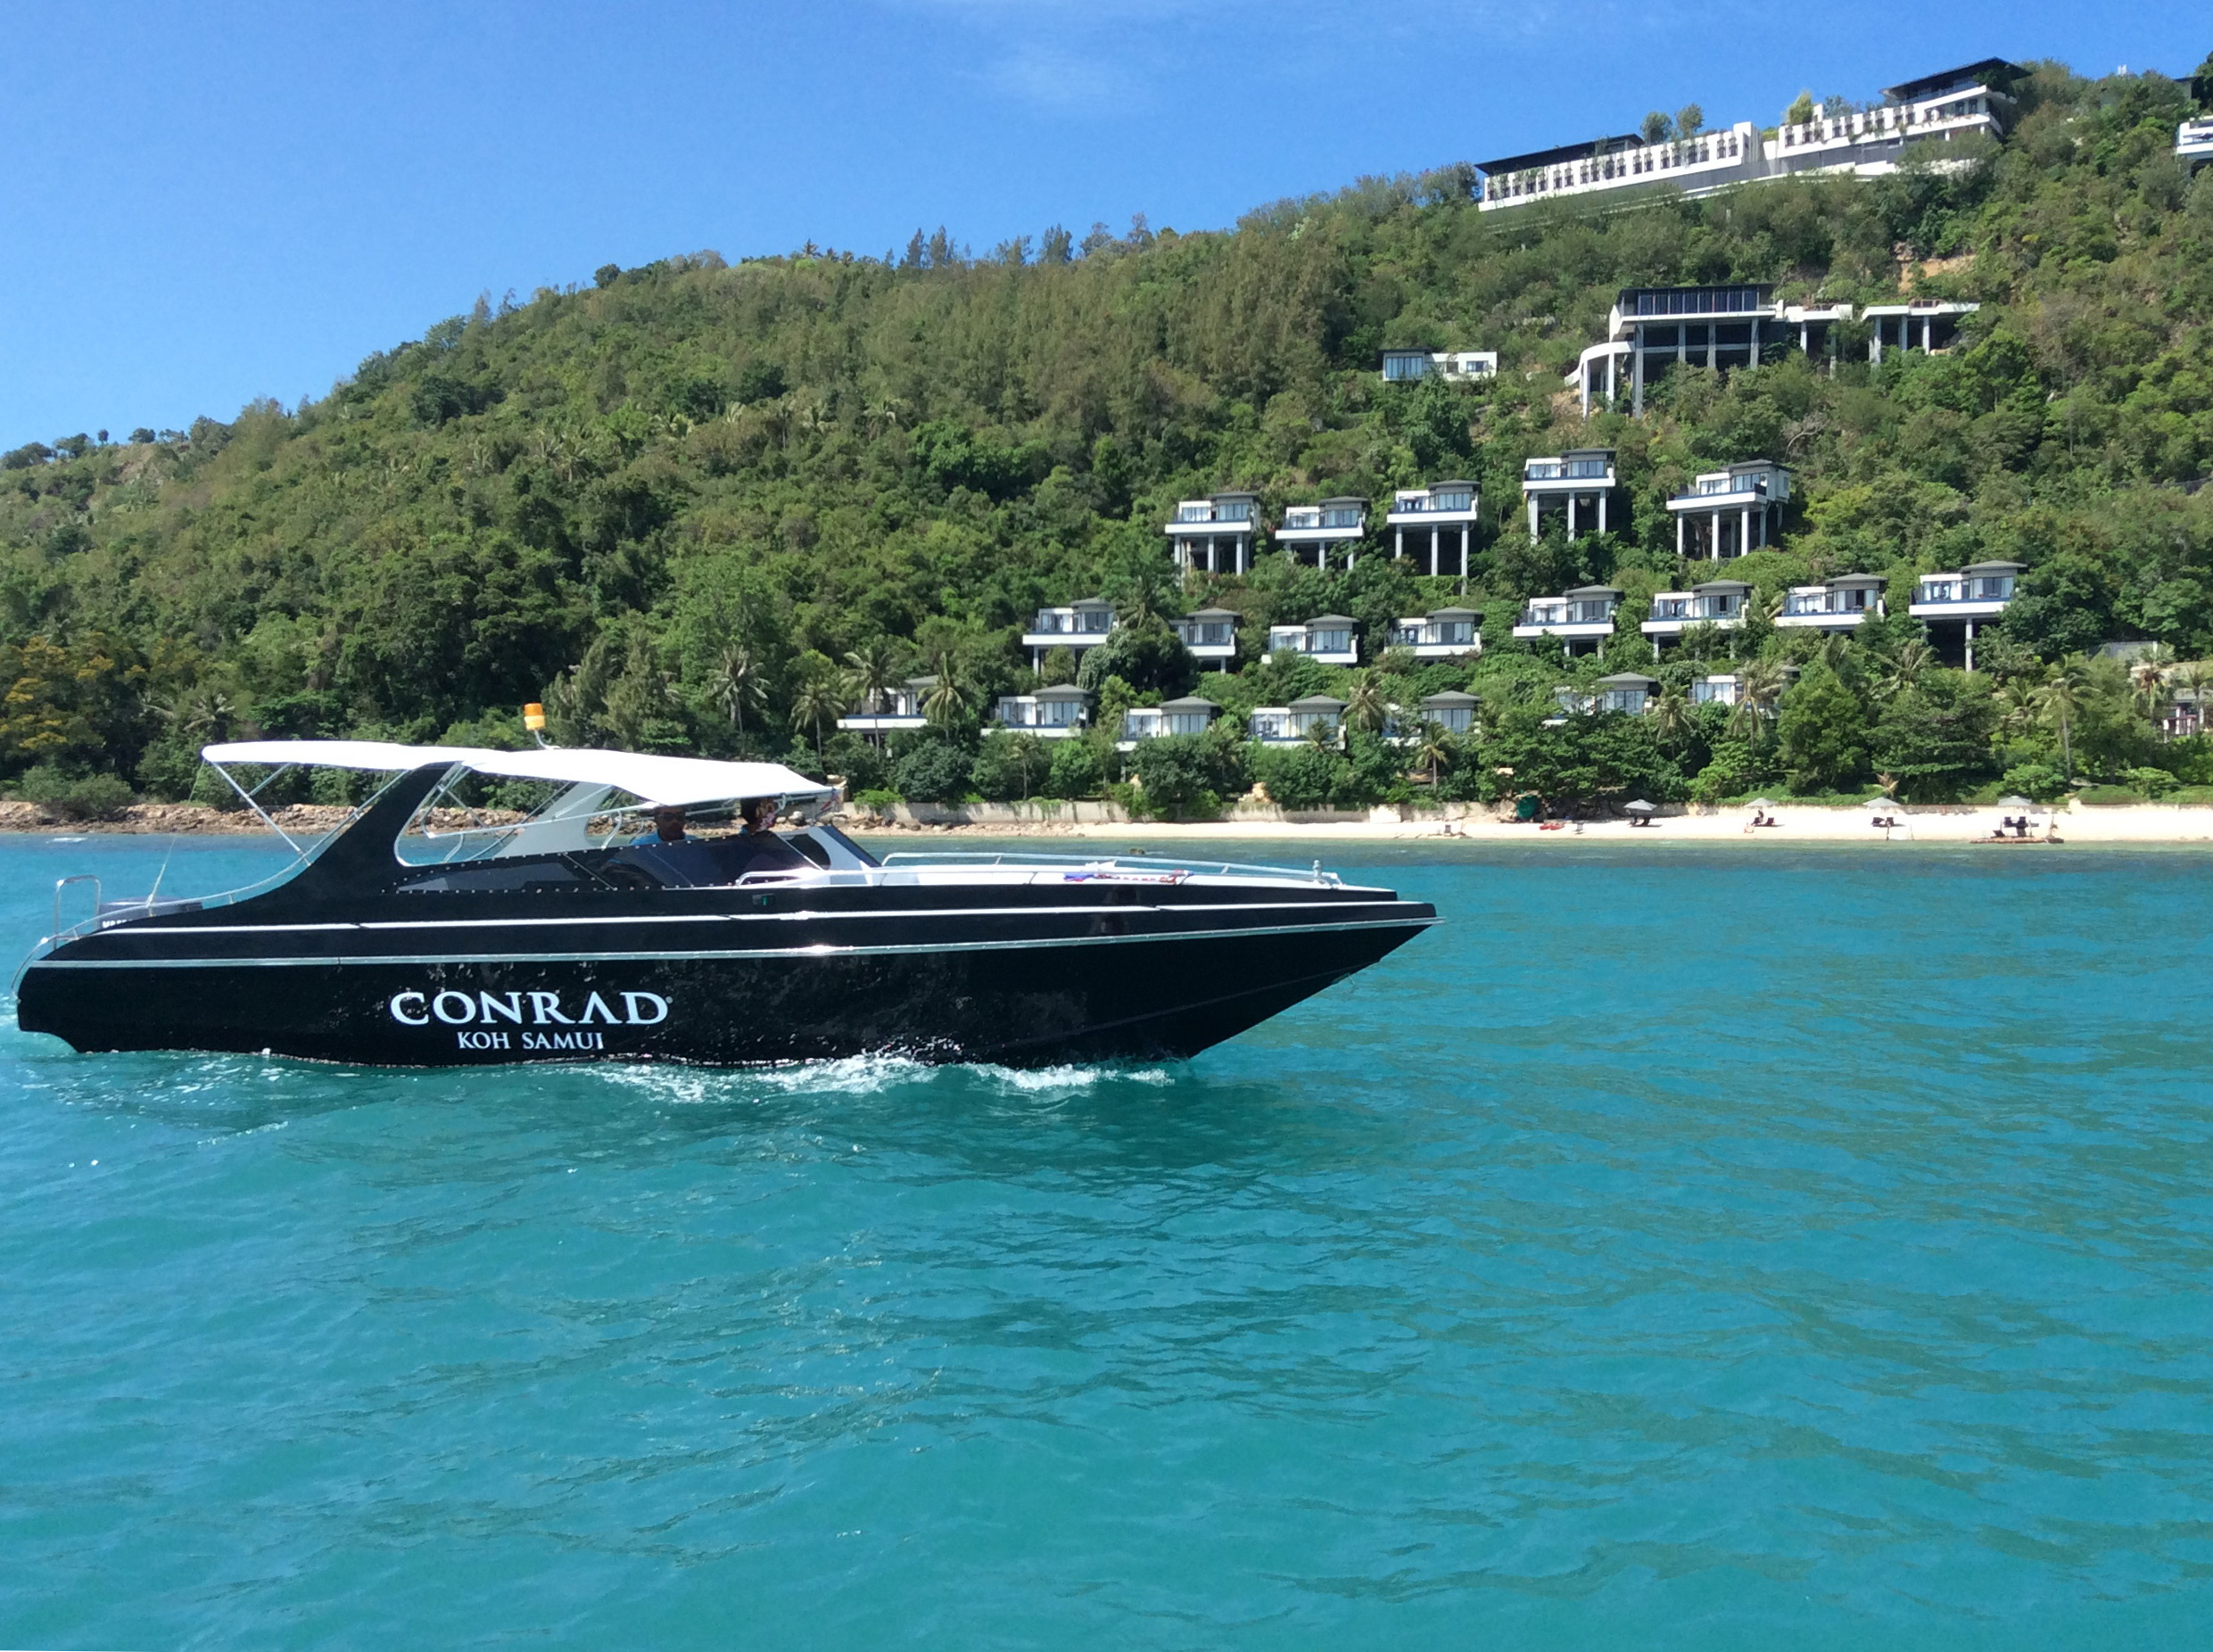 Conrad Koh Samui Introduces the Newest Thailand Weekend Escape Offer | Samui Times